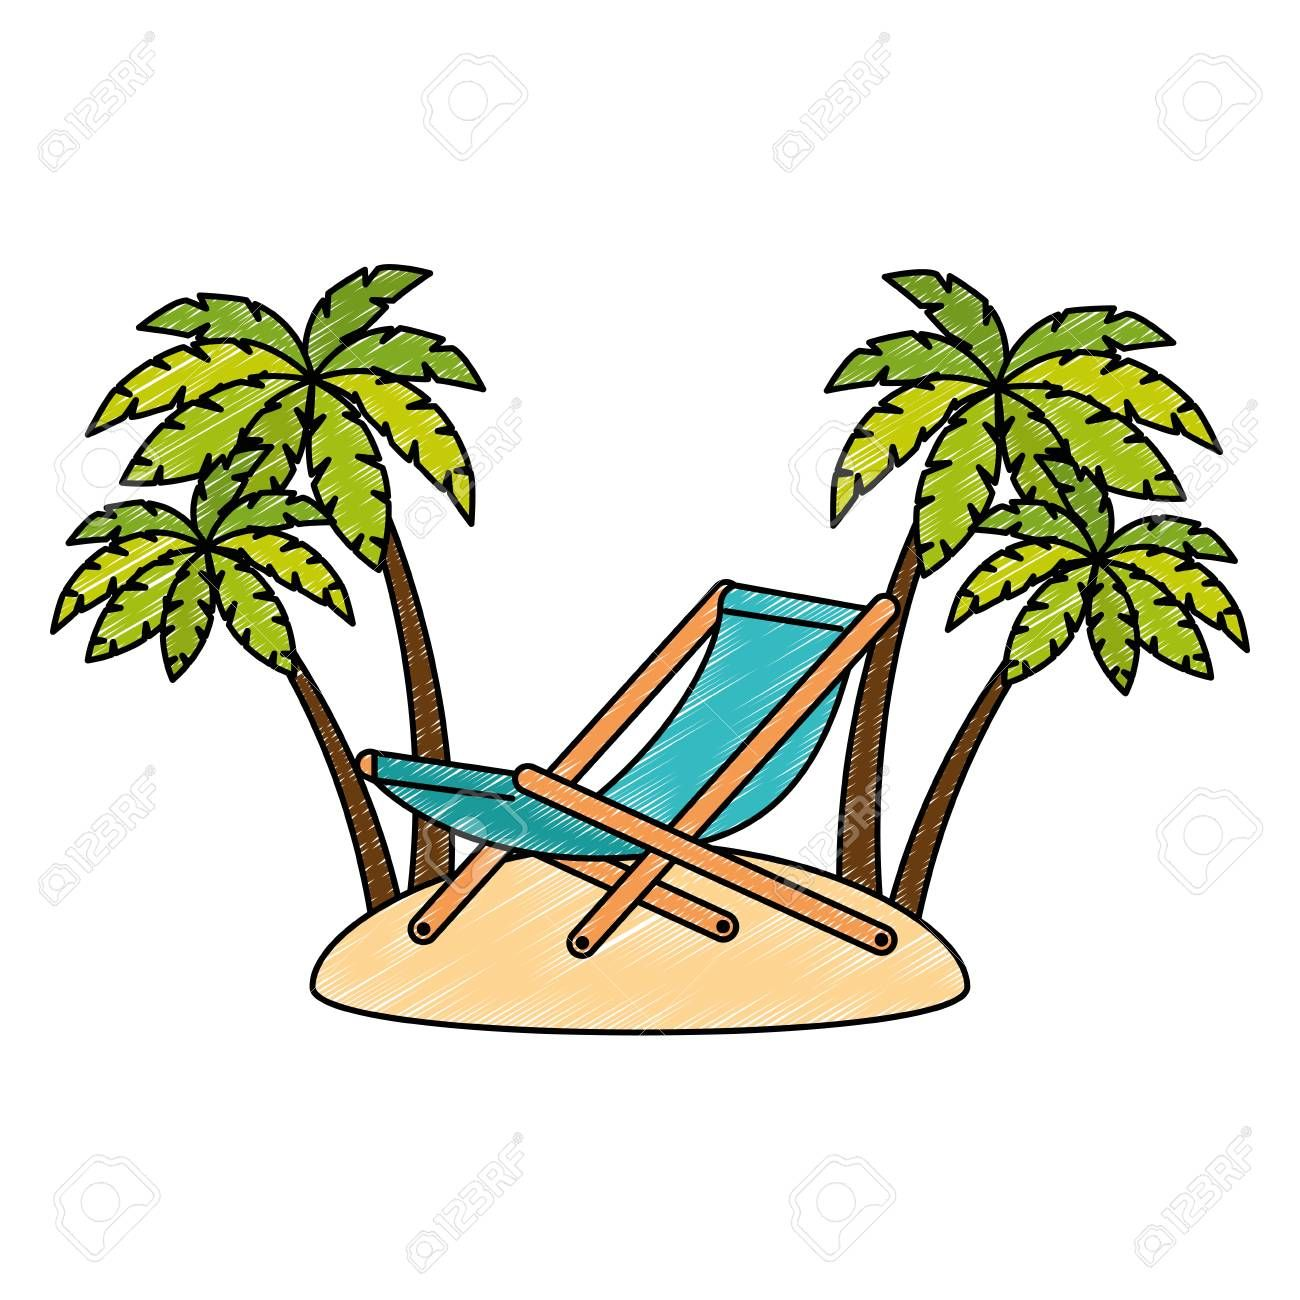 Wooden Beach Chair With Seascape Vector Illustration Design Sponsored Chair Beach W In 2020 Vector Illustration Design Wooden Beach Chairs Illustration Design